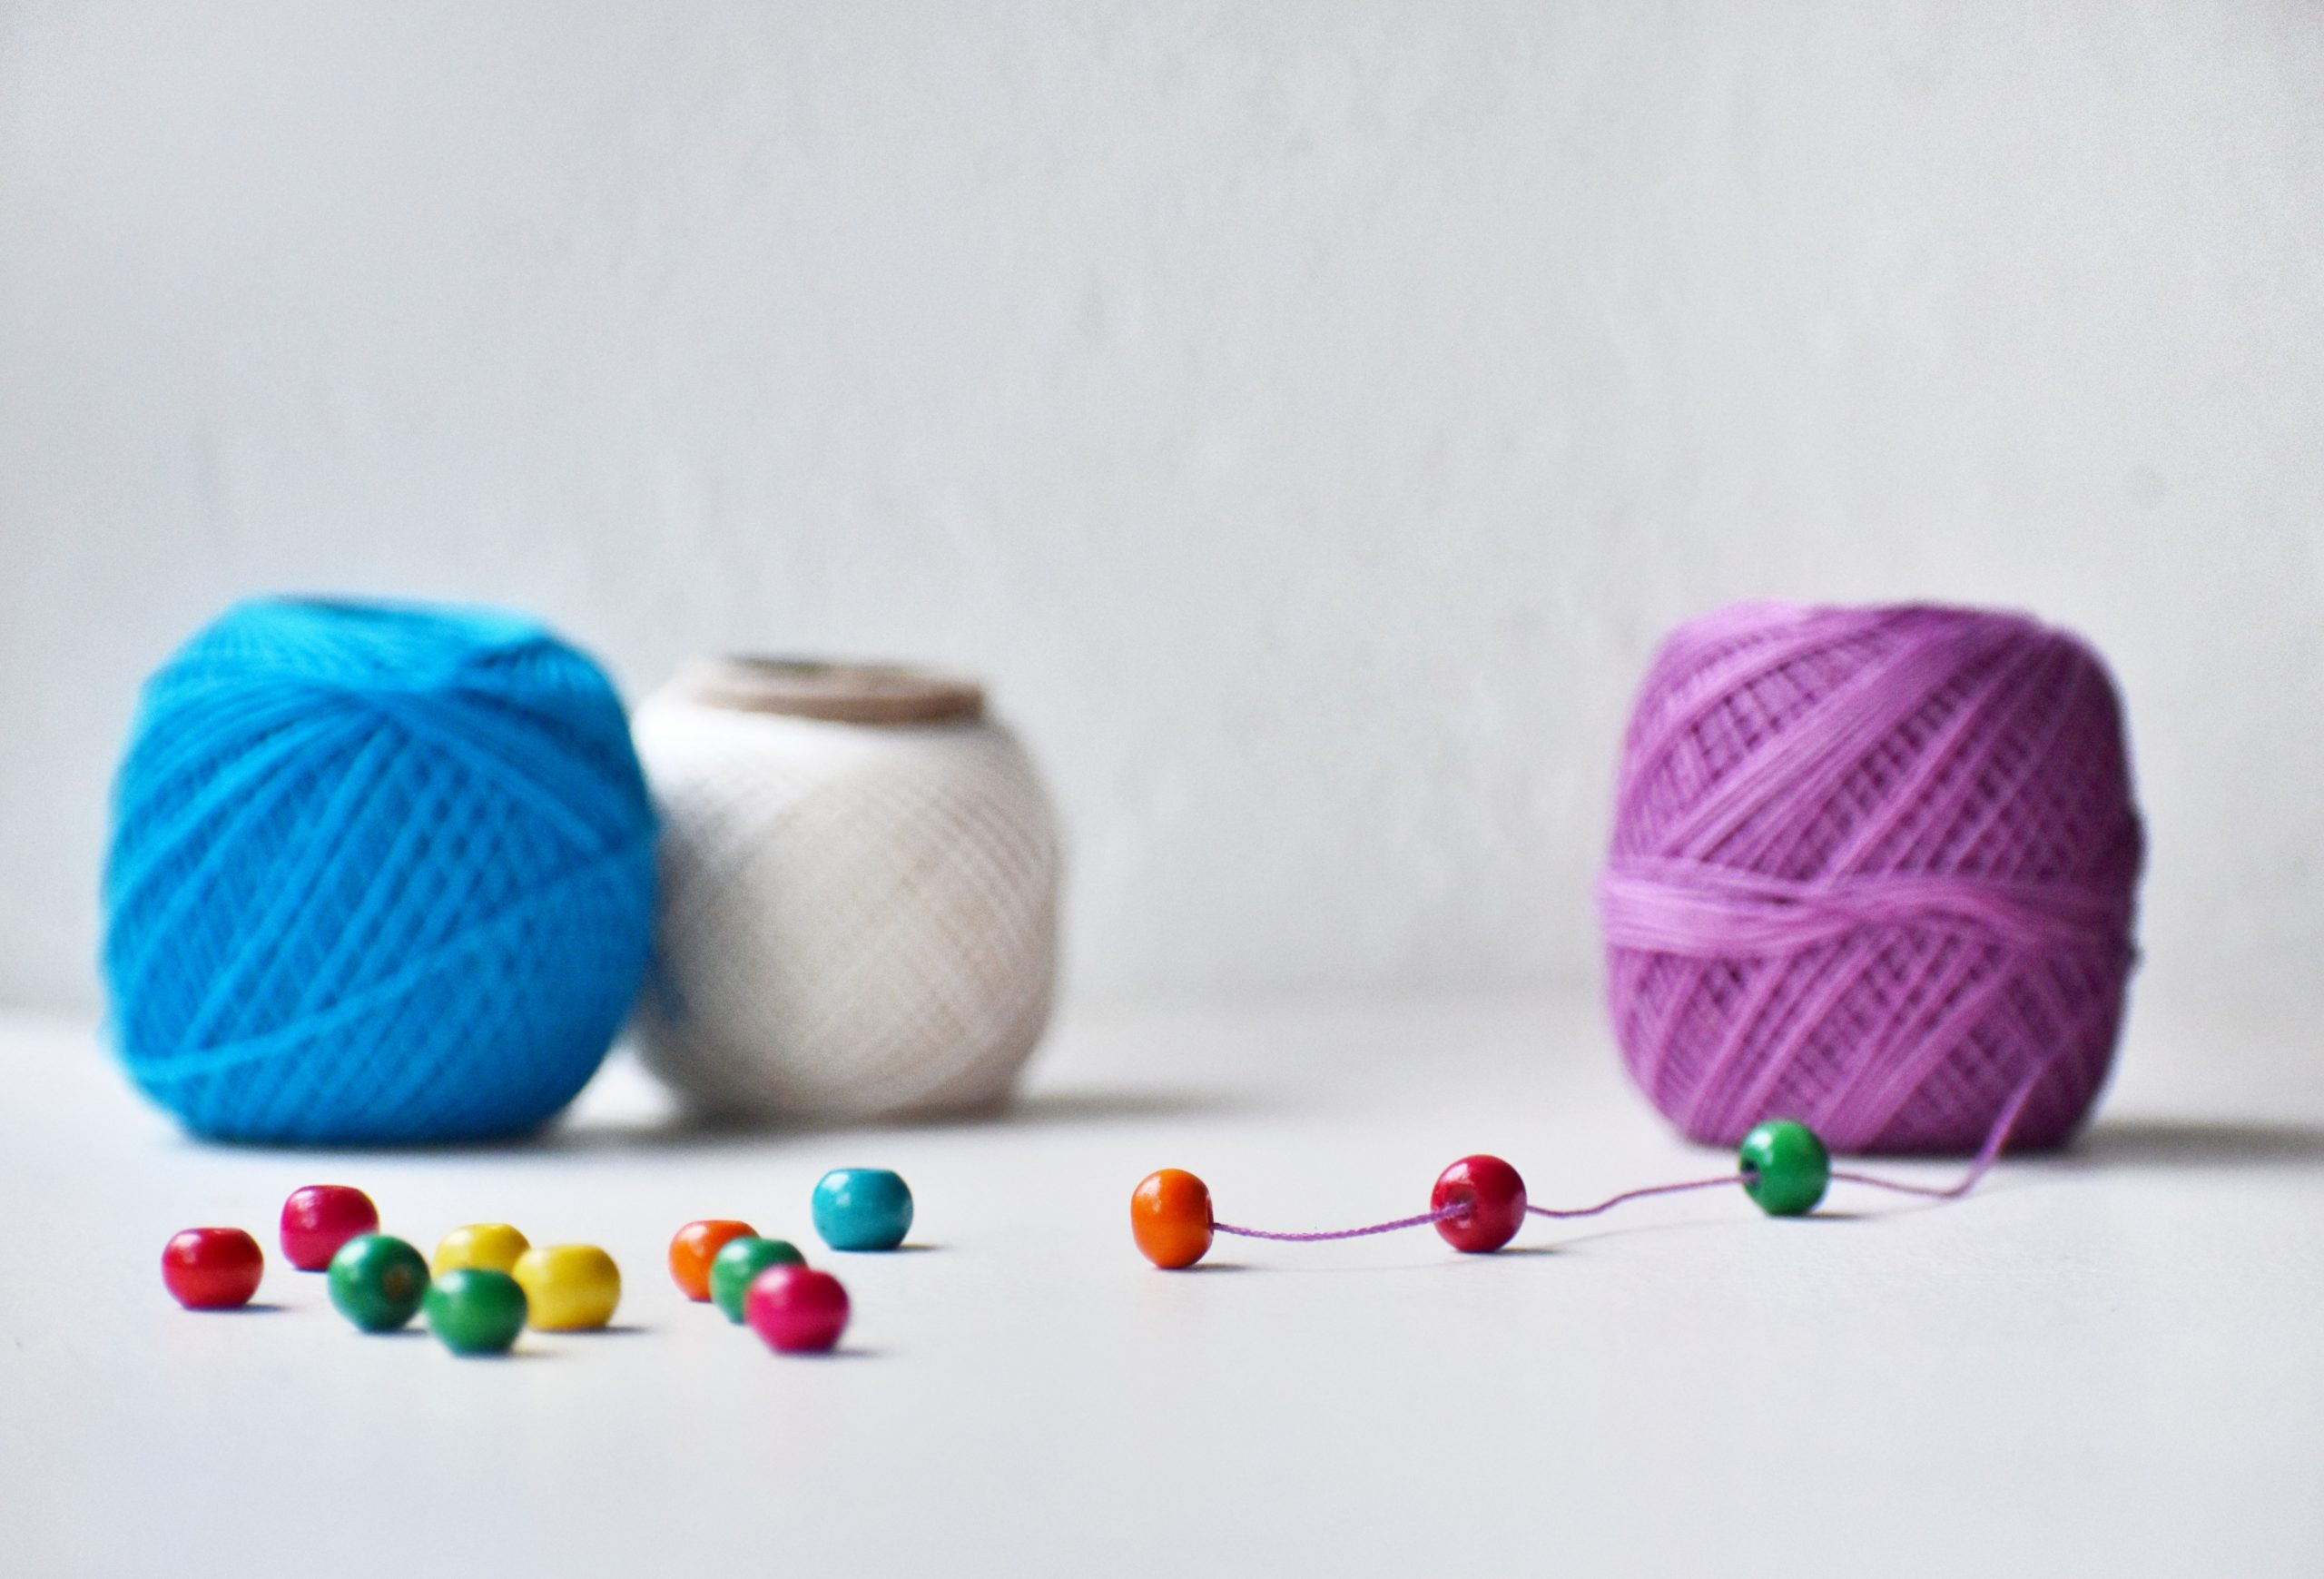 Beads and string